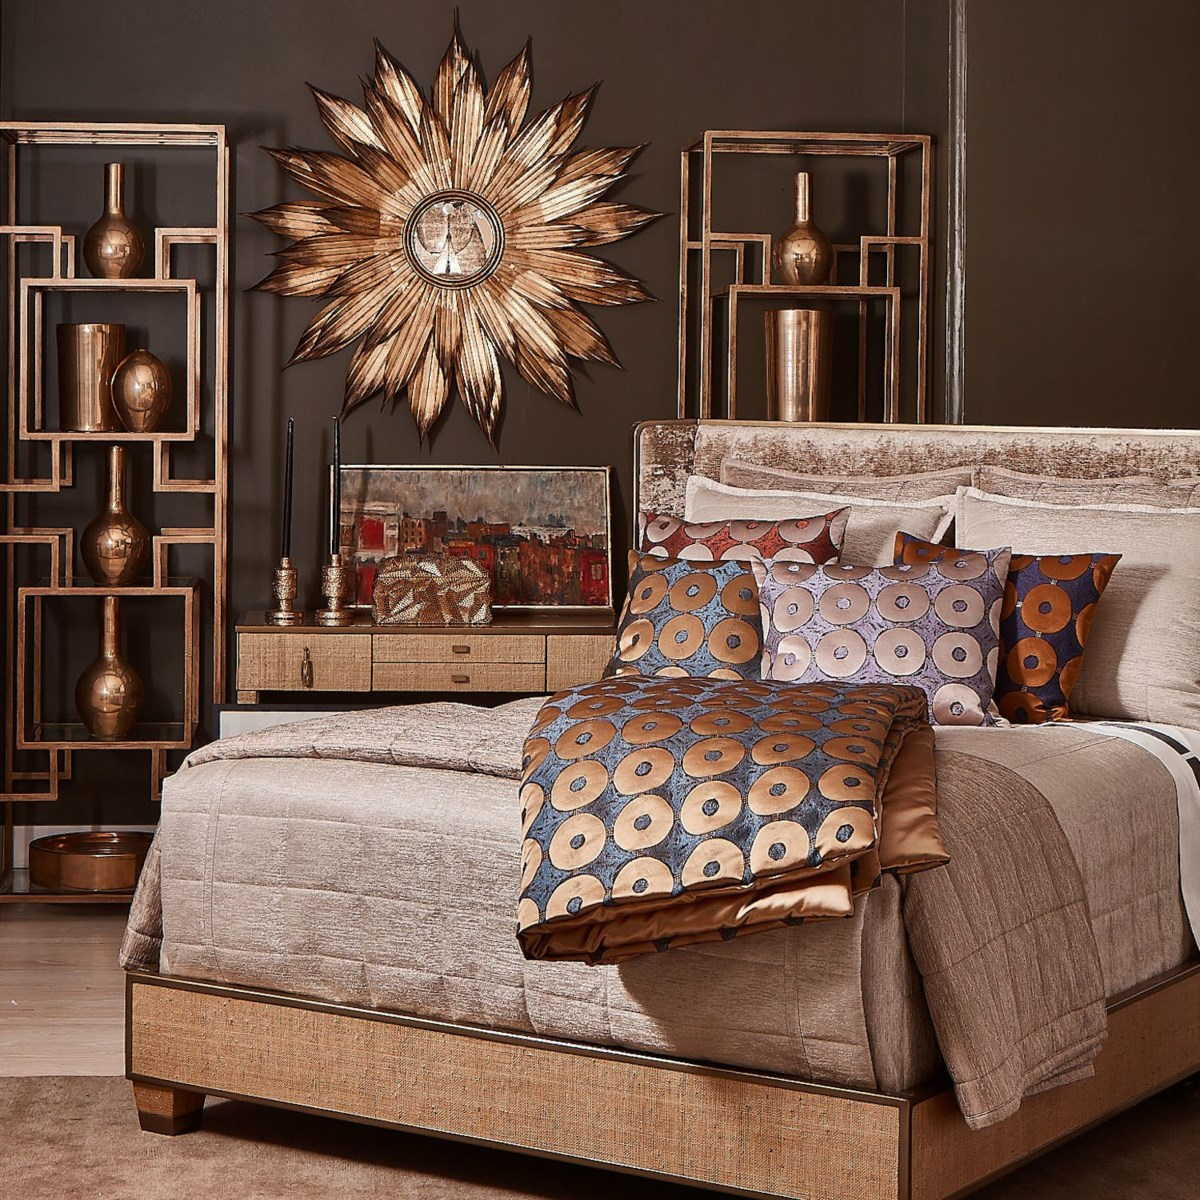 Ann-Gish-Stria-and-Ring-Bedding-Collection-L